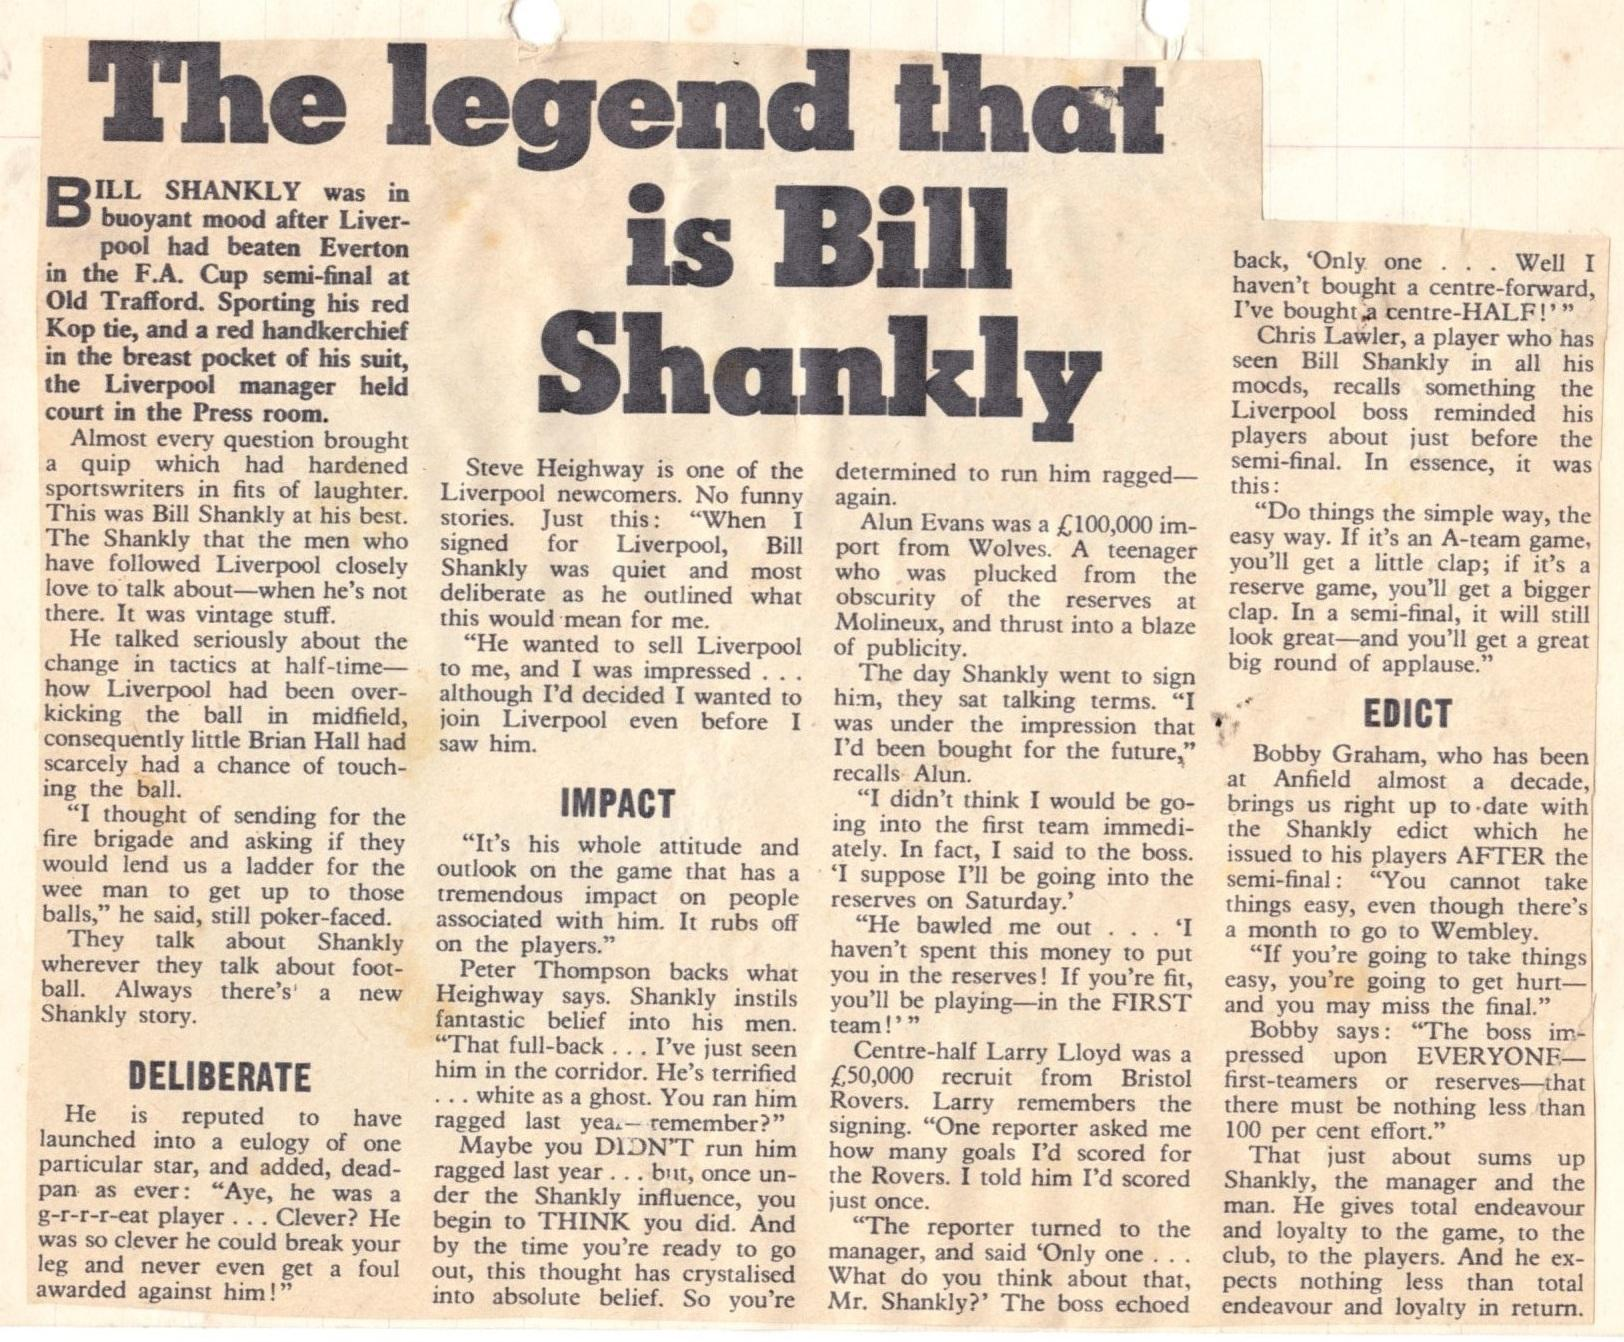 The legend that is Bill Shankly - 27 March 1971